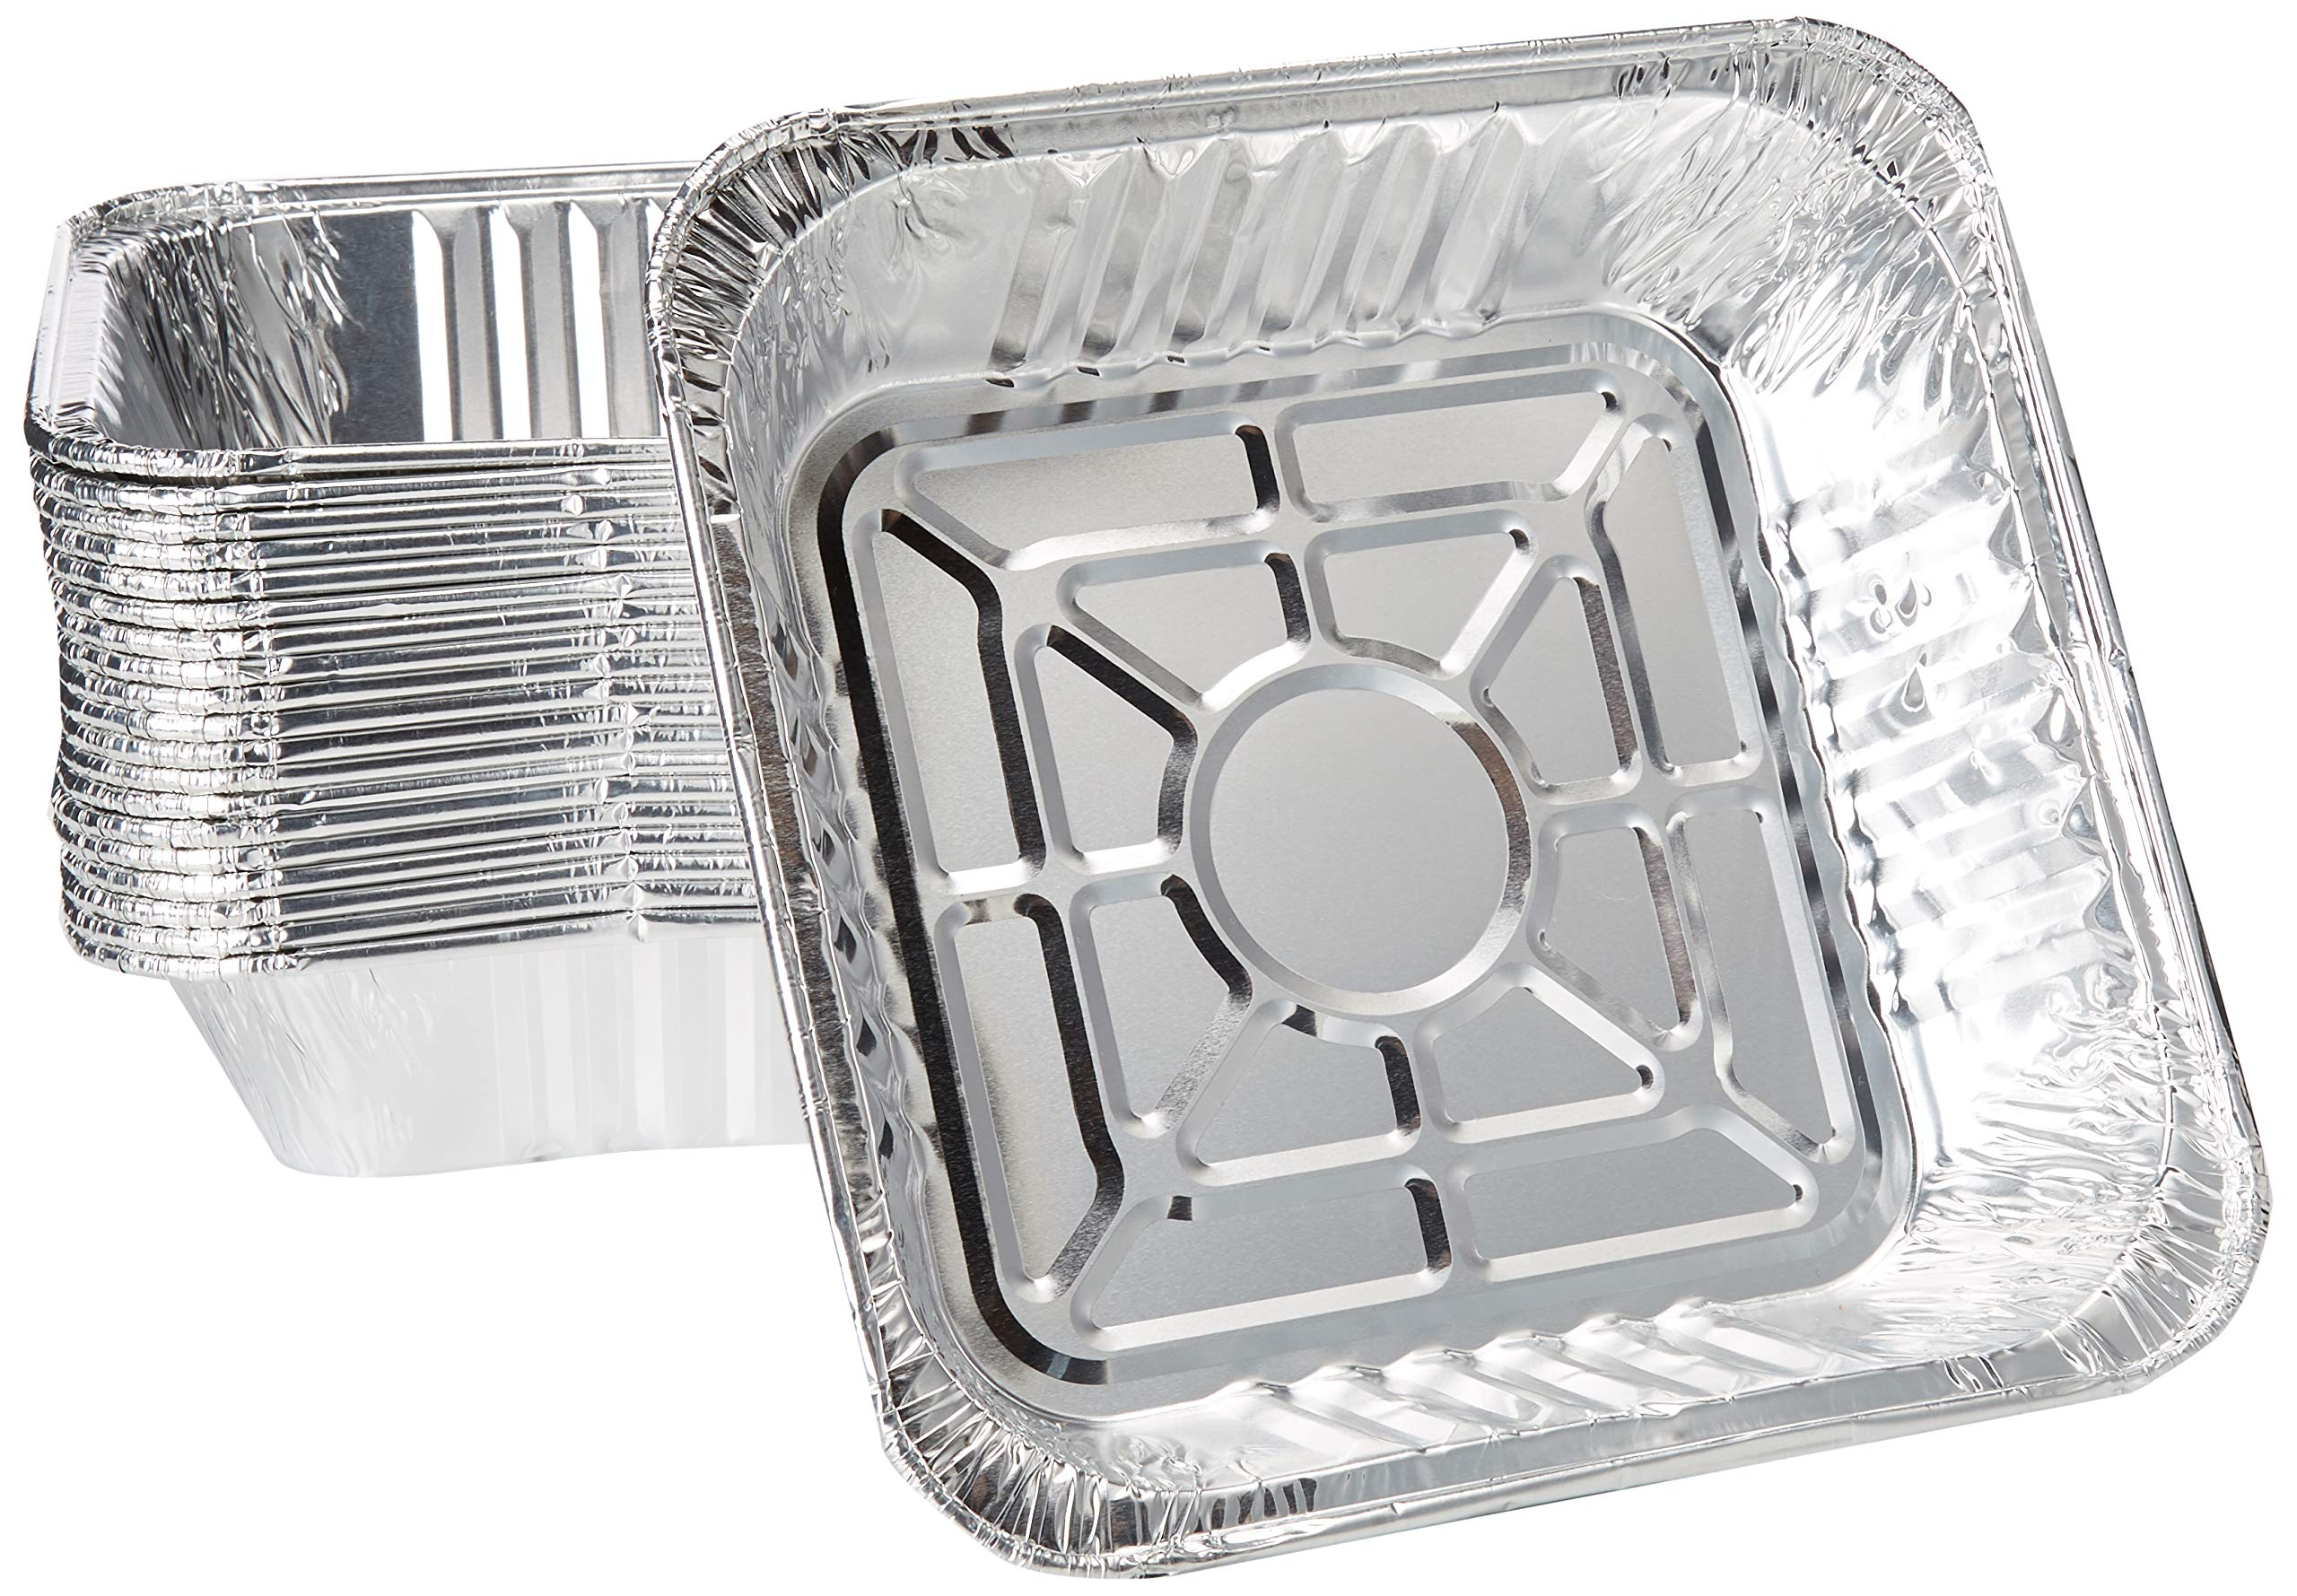 10'' x 10'' Strong Aluminum Square -Poultry- Baking Pans (Pack of 20) - Great For Transporting - Disposable Silver Foil Cooking Tins - Ideal for Poultry, Coffee Cakes, by DCS Deals